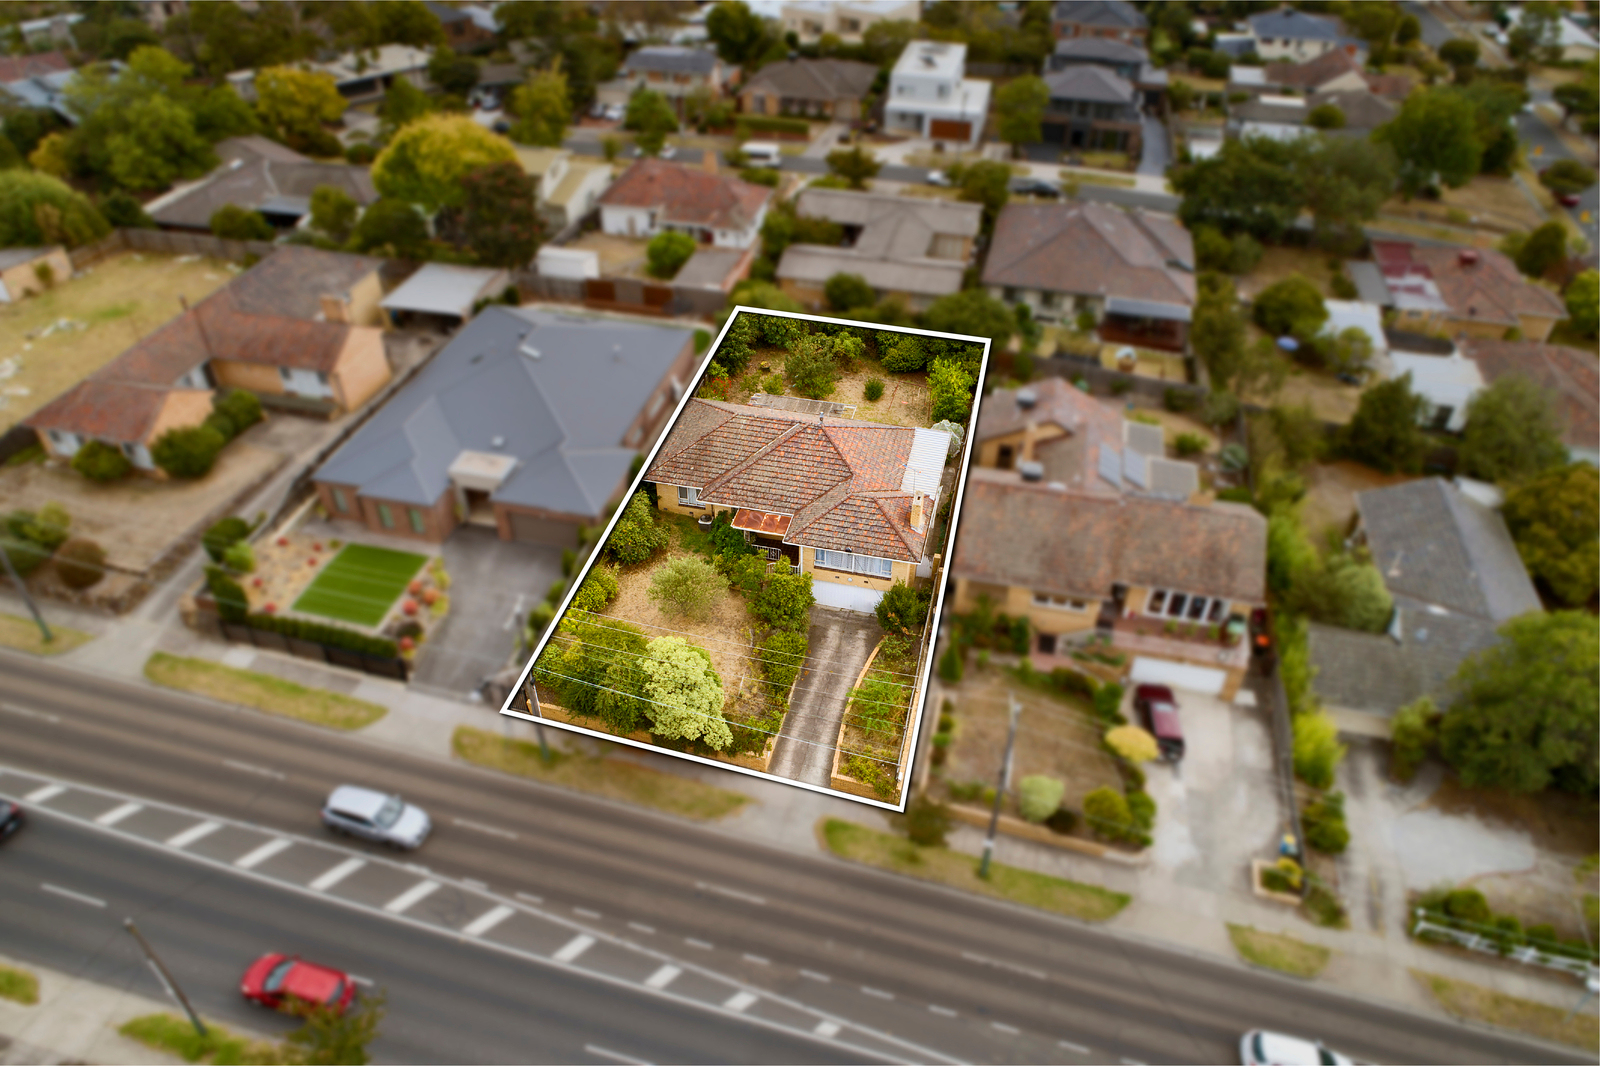 357 Doncaster Road, Balwyn North 3104 - Image 10